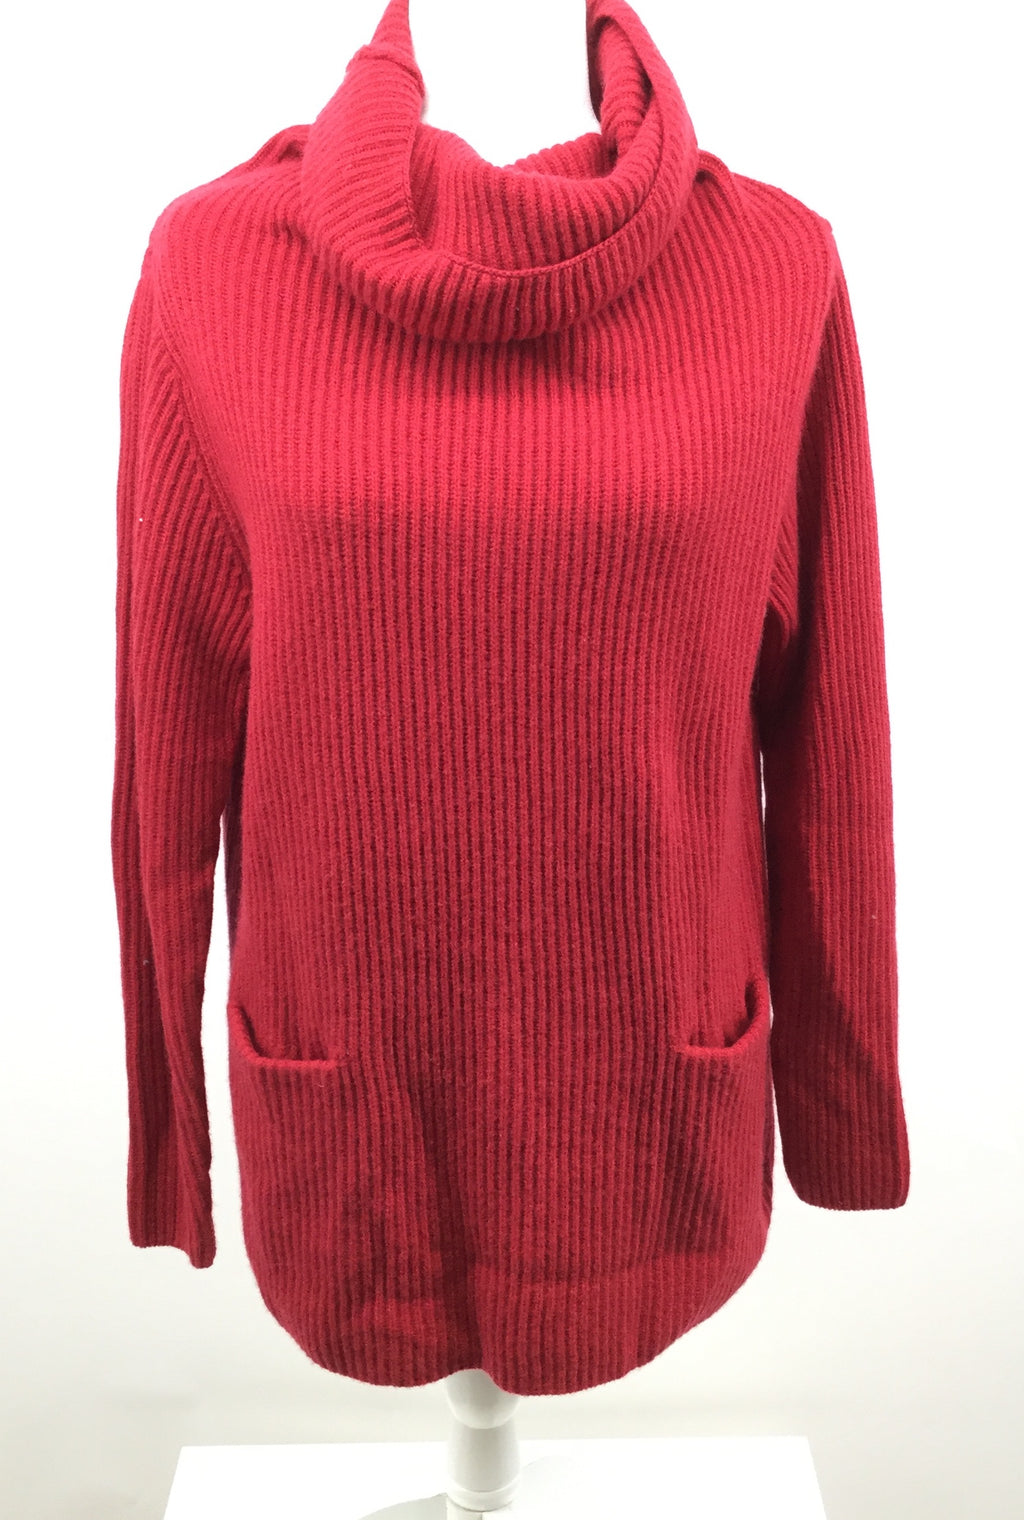 Vince Sweater Cashmere Size:s